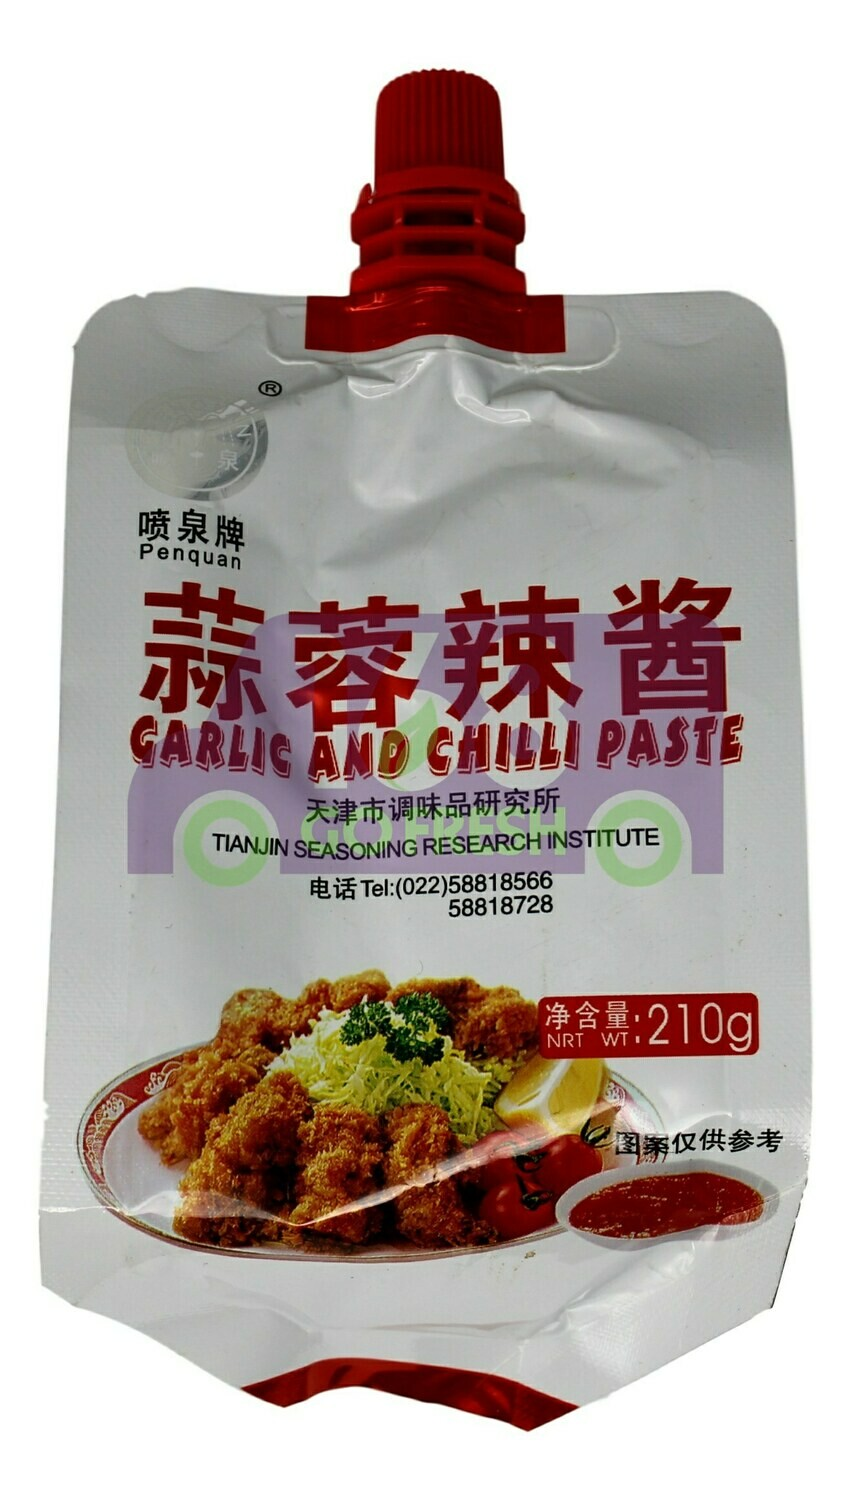 PEN QUAN GARLIC CHILI PASTE 喷泉牌 蒜蓉辣酱(210G)